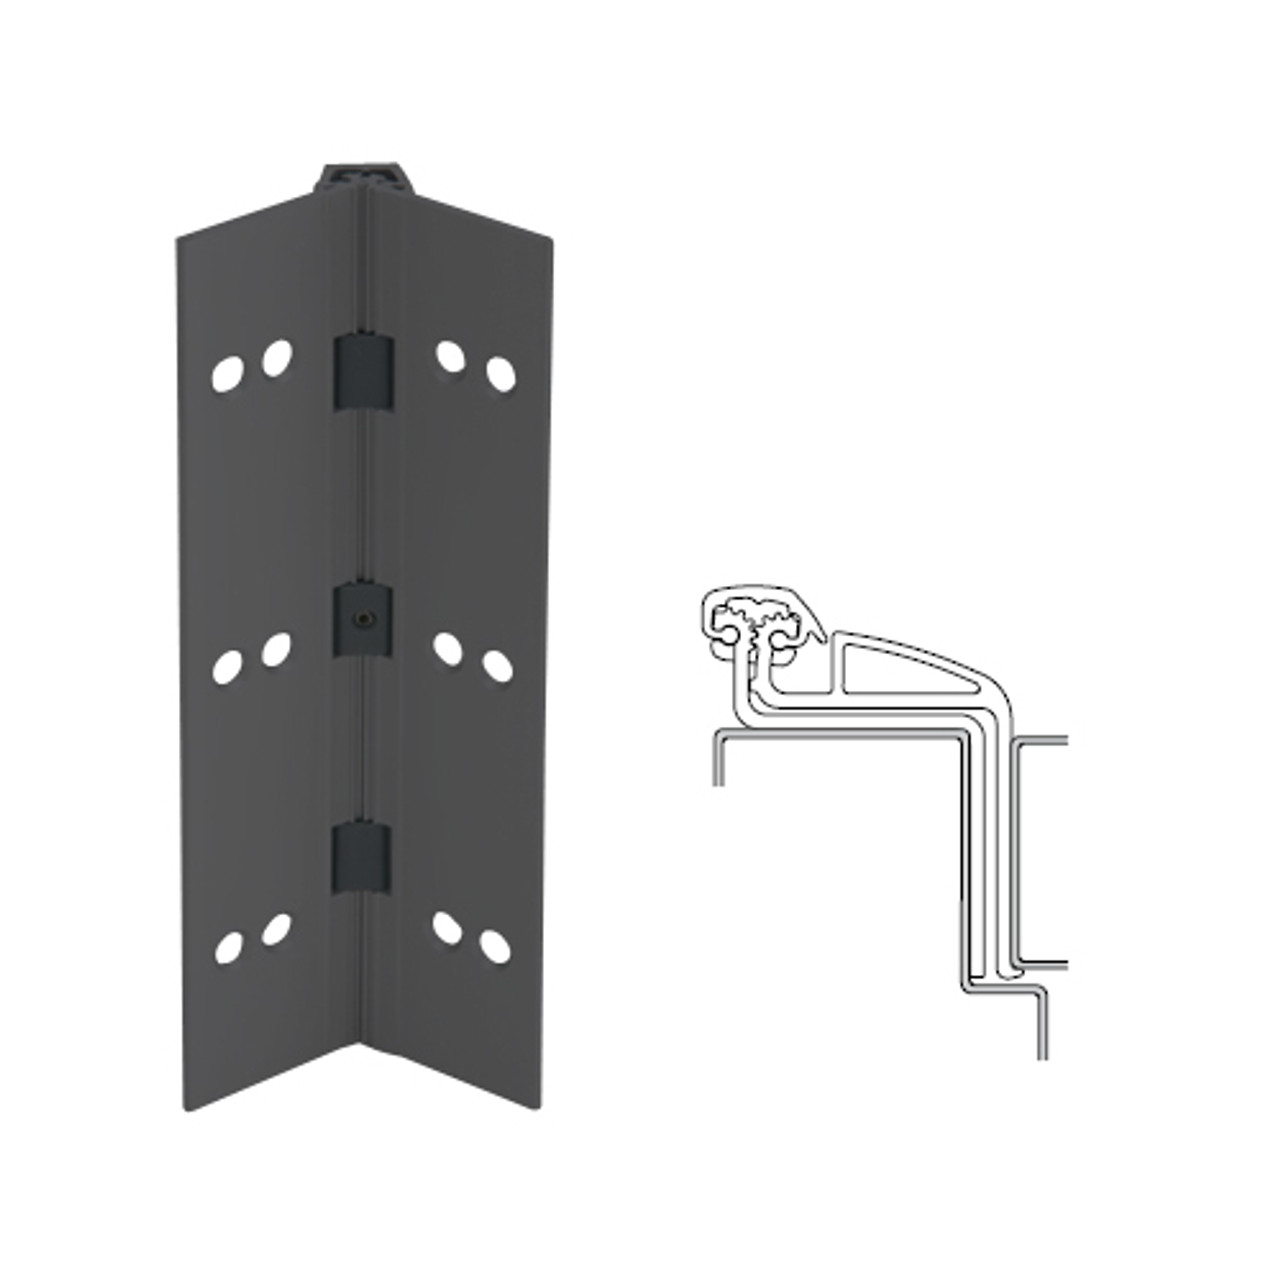 041XY-315AN-120-SECWDWD IVES Full Mortise Continuous Geared Hinges with Security Screws - Hex Pin Drive in Anodized Black